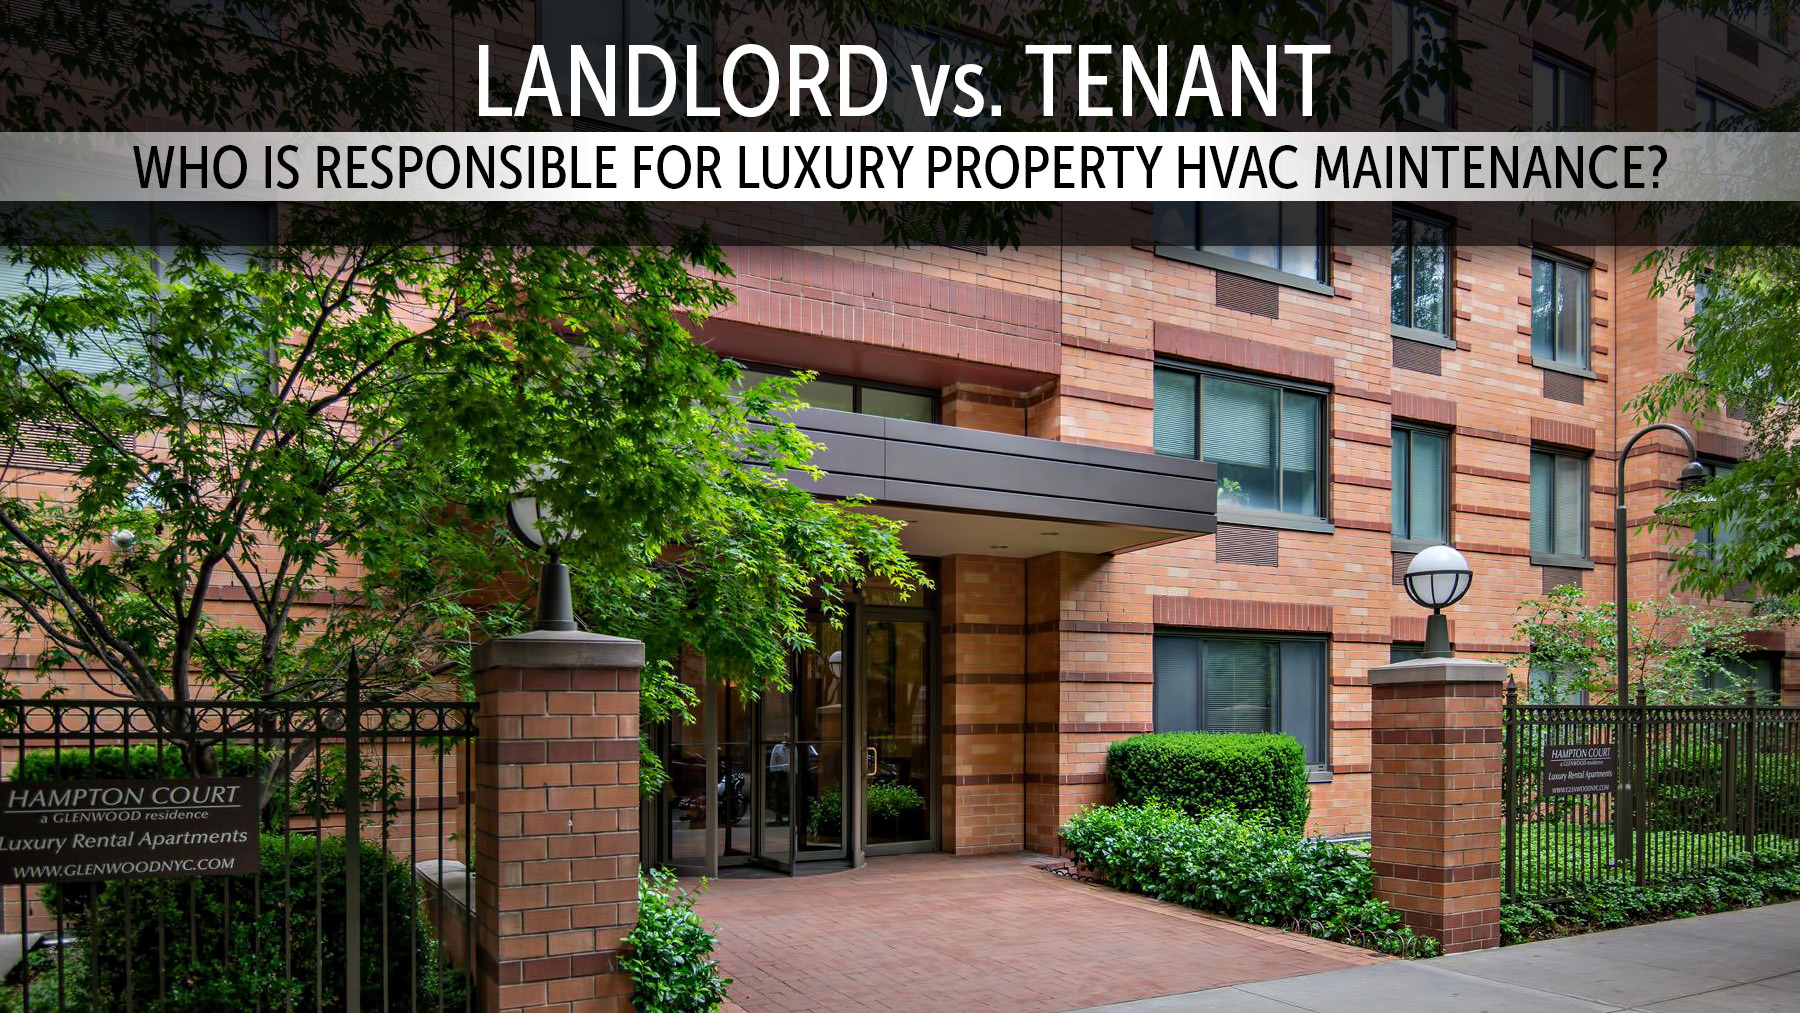 Landlord vs. Tenant - Who is Responsible for Luxury Property HVAC Maintenance?